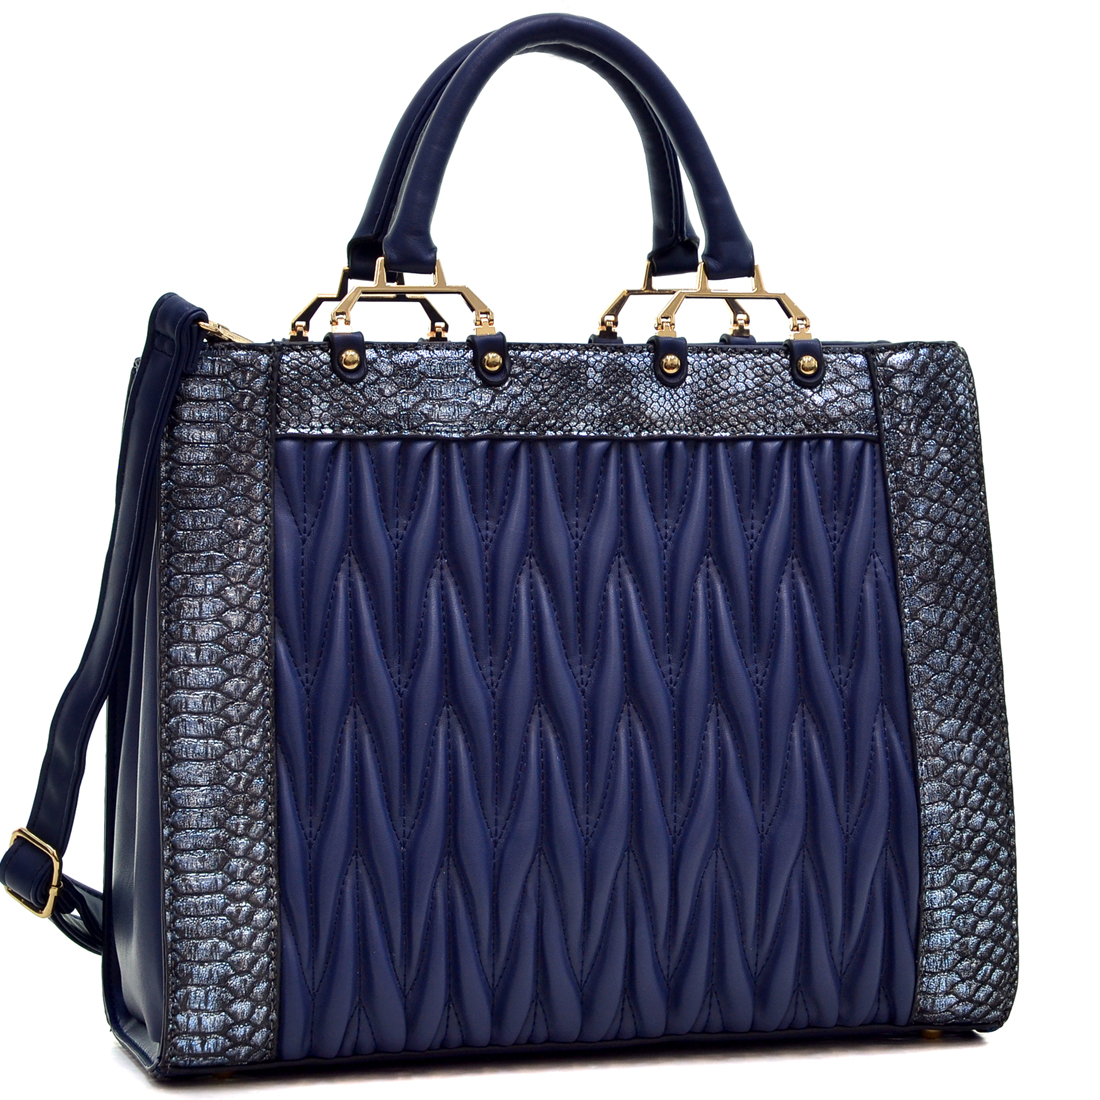 Dasein® Textured Leather with Croco Metallic Trim Tote